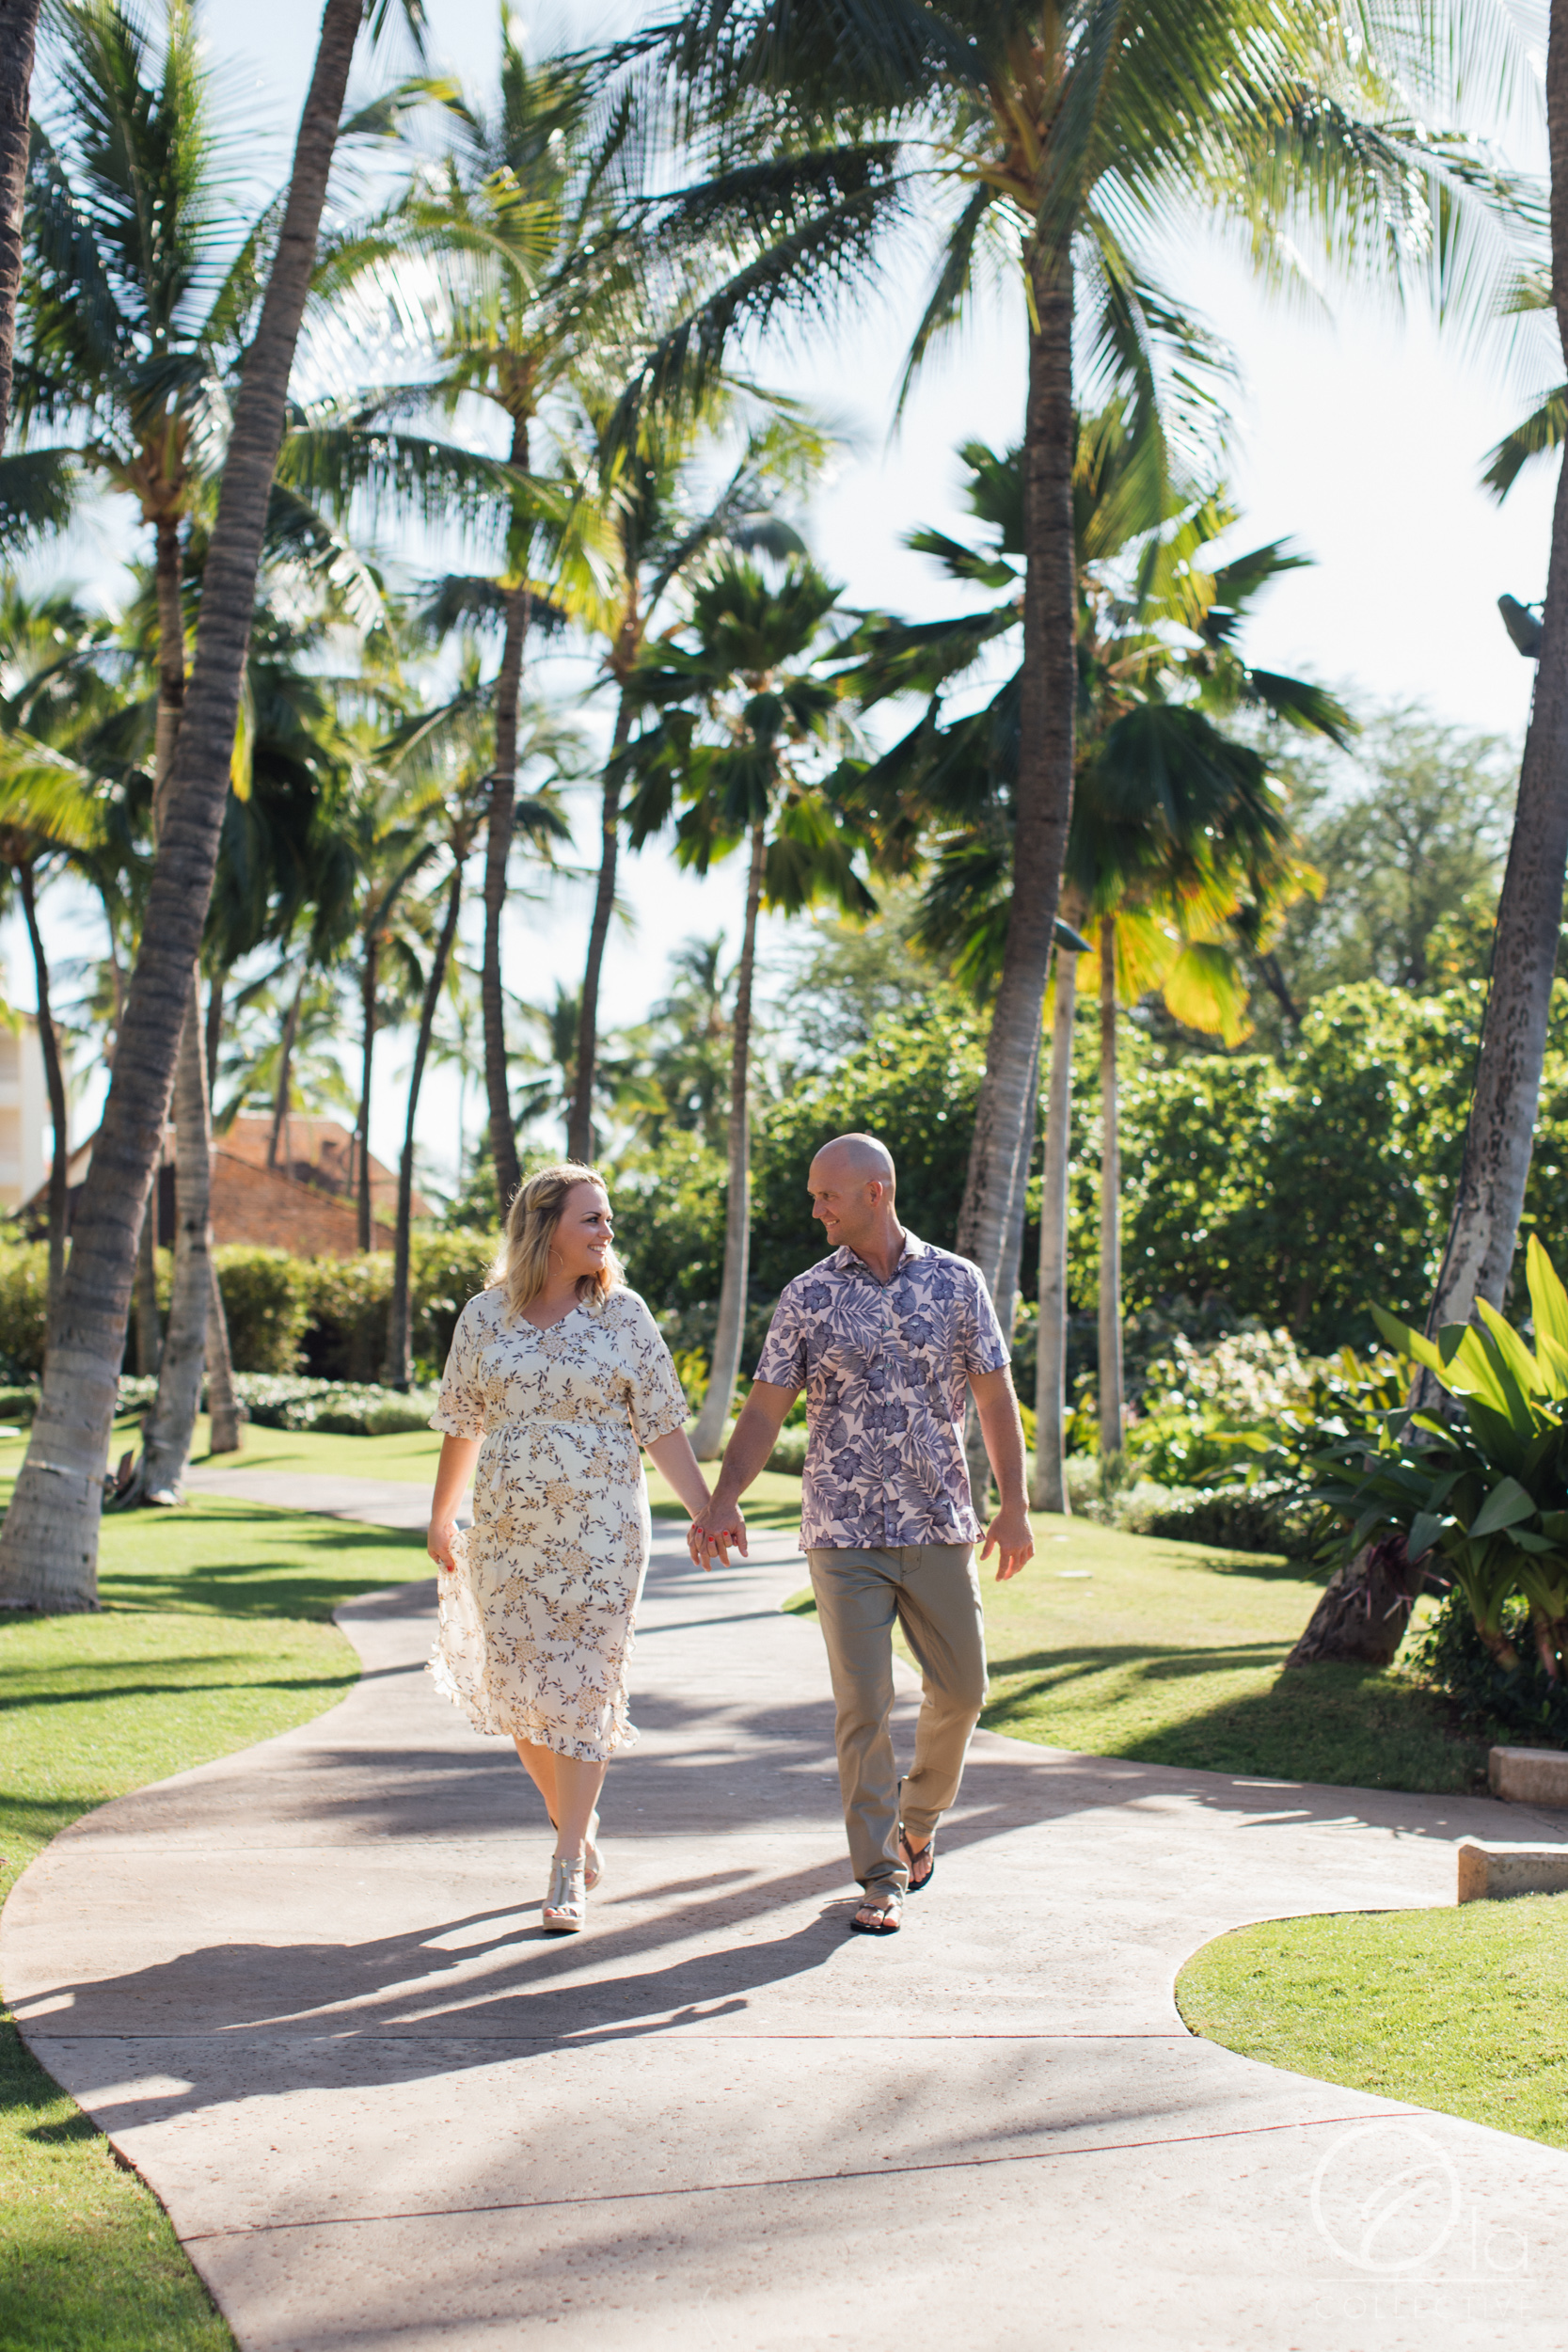 Ko-Olina-Engagement-Photographer-Ola-Collective-11.jpg